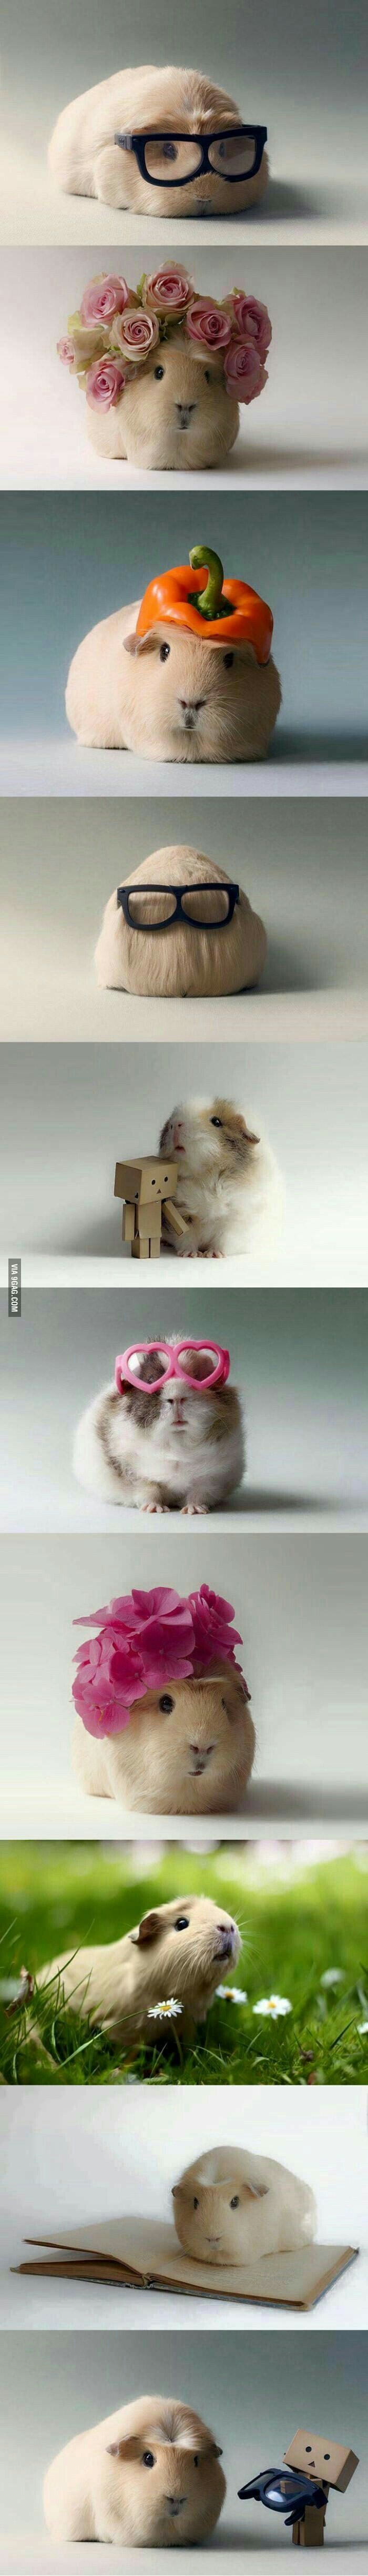 Funny guinea pig, getting all dressed up!